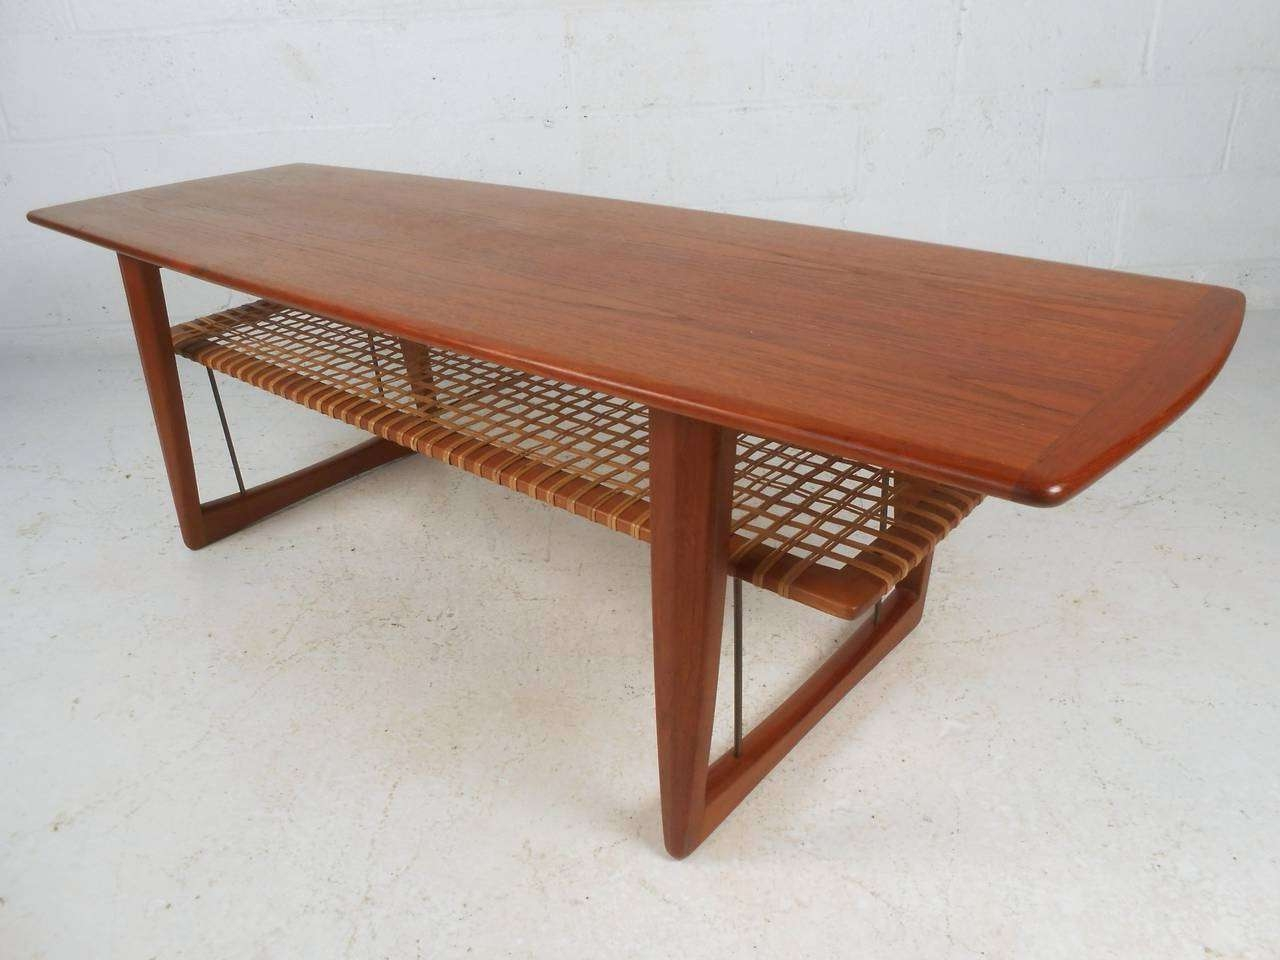 Well Known Coffee Tables With Shelves Regarding Danish Modern Coffee Table After Peter Hvidt For Sale At 1stdibs (View 3 of 20)